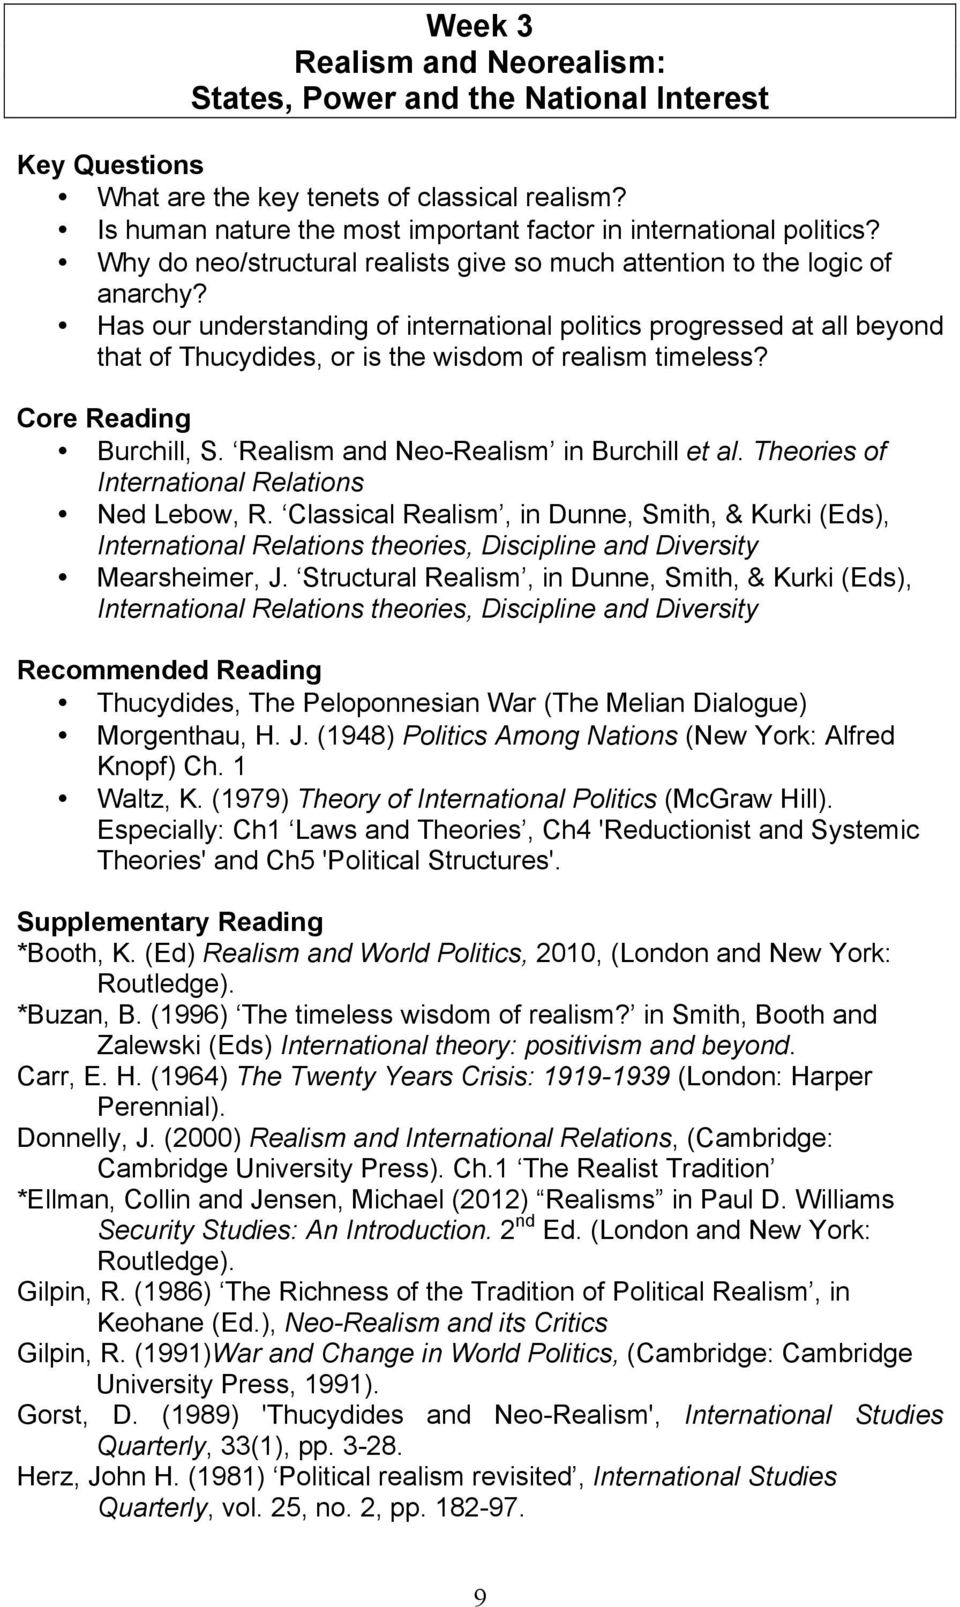 THEORIES AND ISSUES IN INTERNATIONAL RELATIONS - PDF